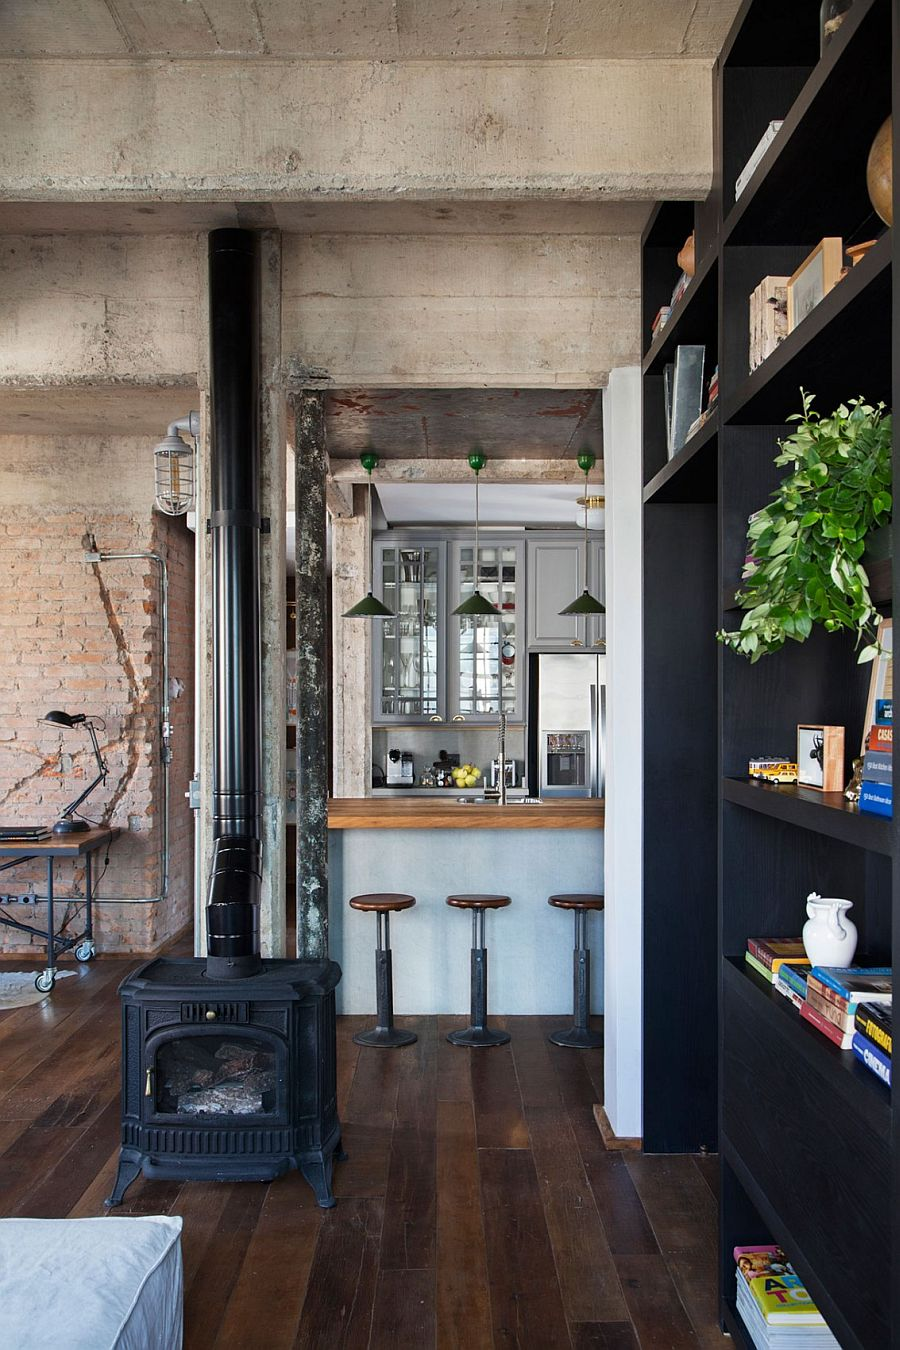 Exposed duct work, pipes and brick walls give the interior a distinct industrial appeal